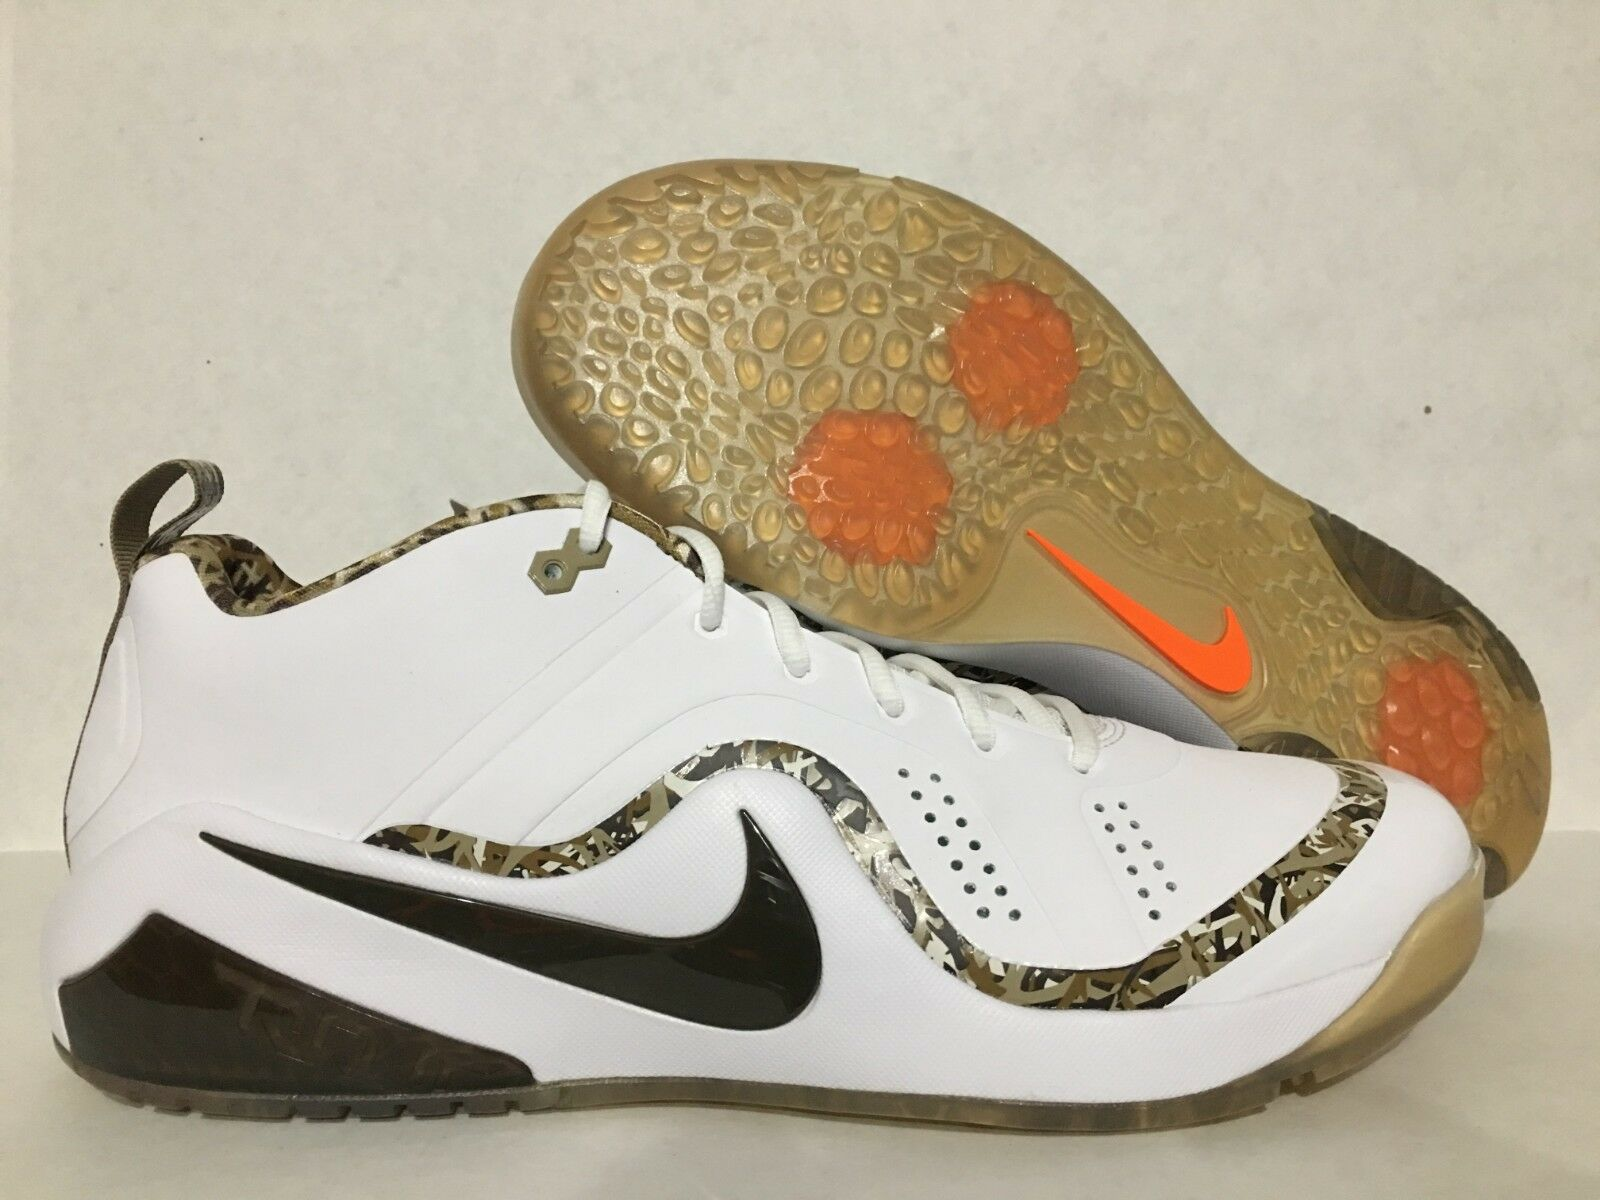 Nike Zoom Trout 4 Turf TF Baseball shoes All Star Game ASG Camo SZ (921599-172)